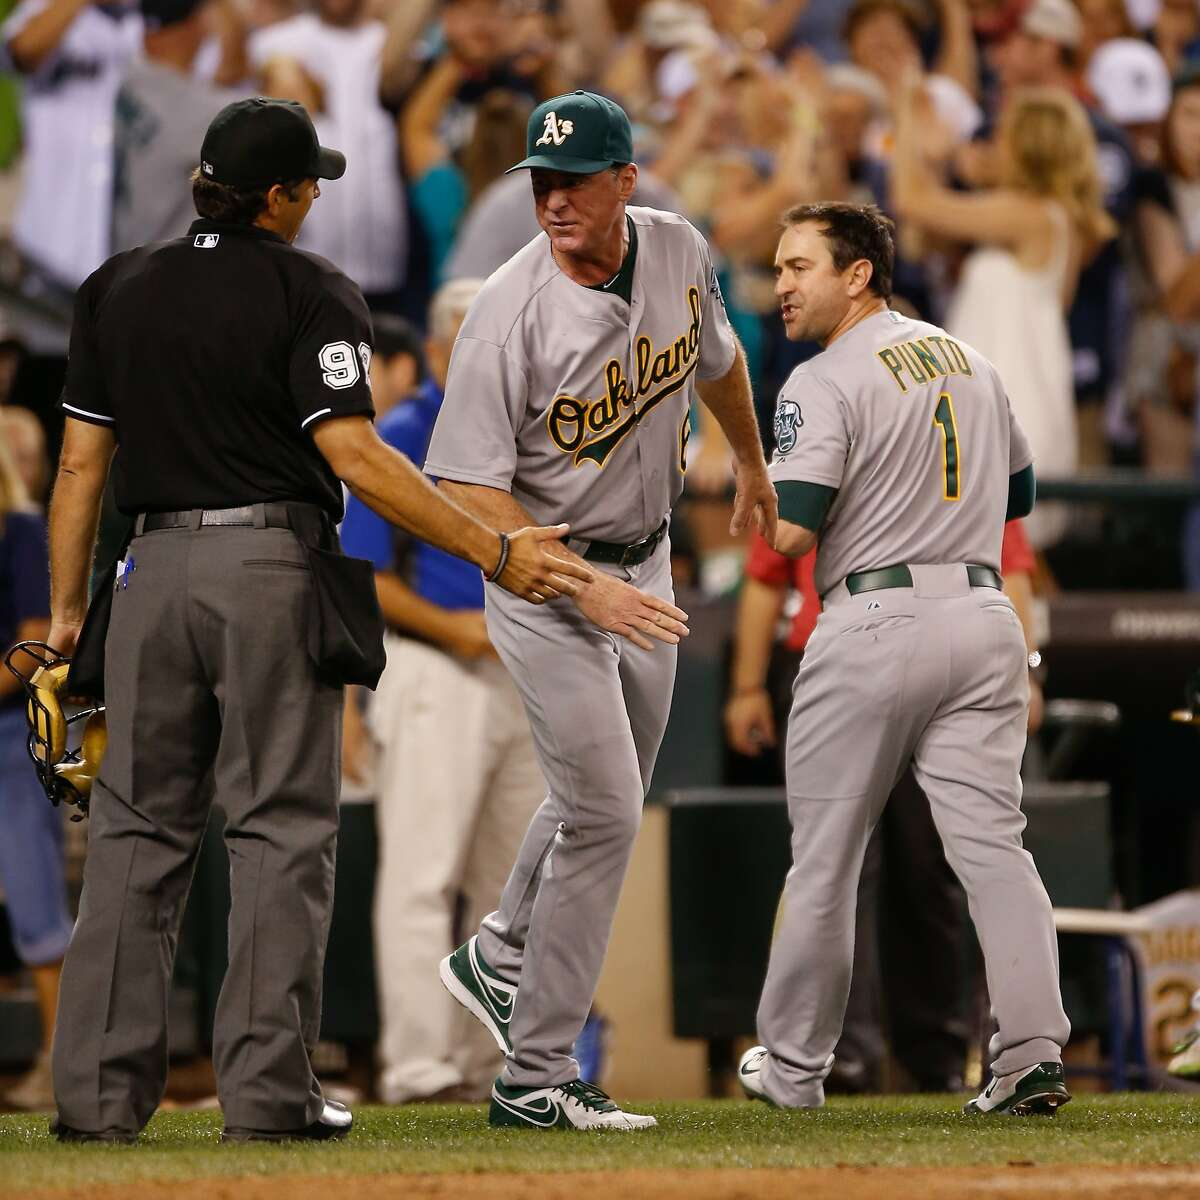 SEATTLE, WA - JULY 11: Manager Bob Melvin #6 of the Oakland Athletics argues with home plate umpire James Hoye #92 after Nick Punto #1 was called out on strikes to end the game in a 3-2 loss to the Seattle Mariners at Safeco Field on July 11, 2014 in Seattle, Washington. (Photo by Otto Greule Jr/Getty Images)